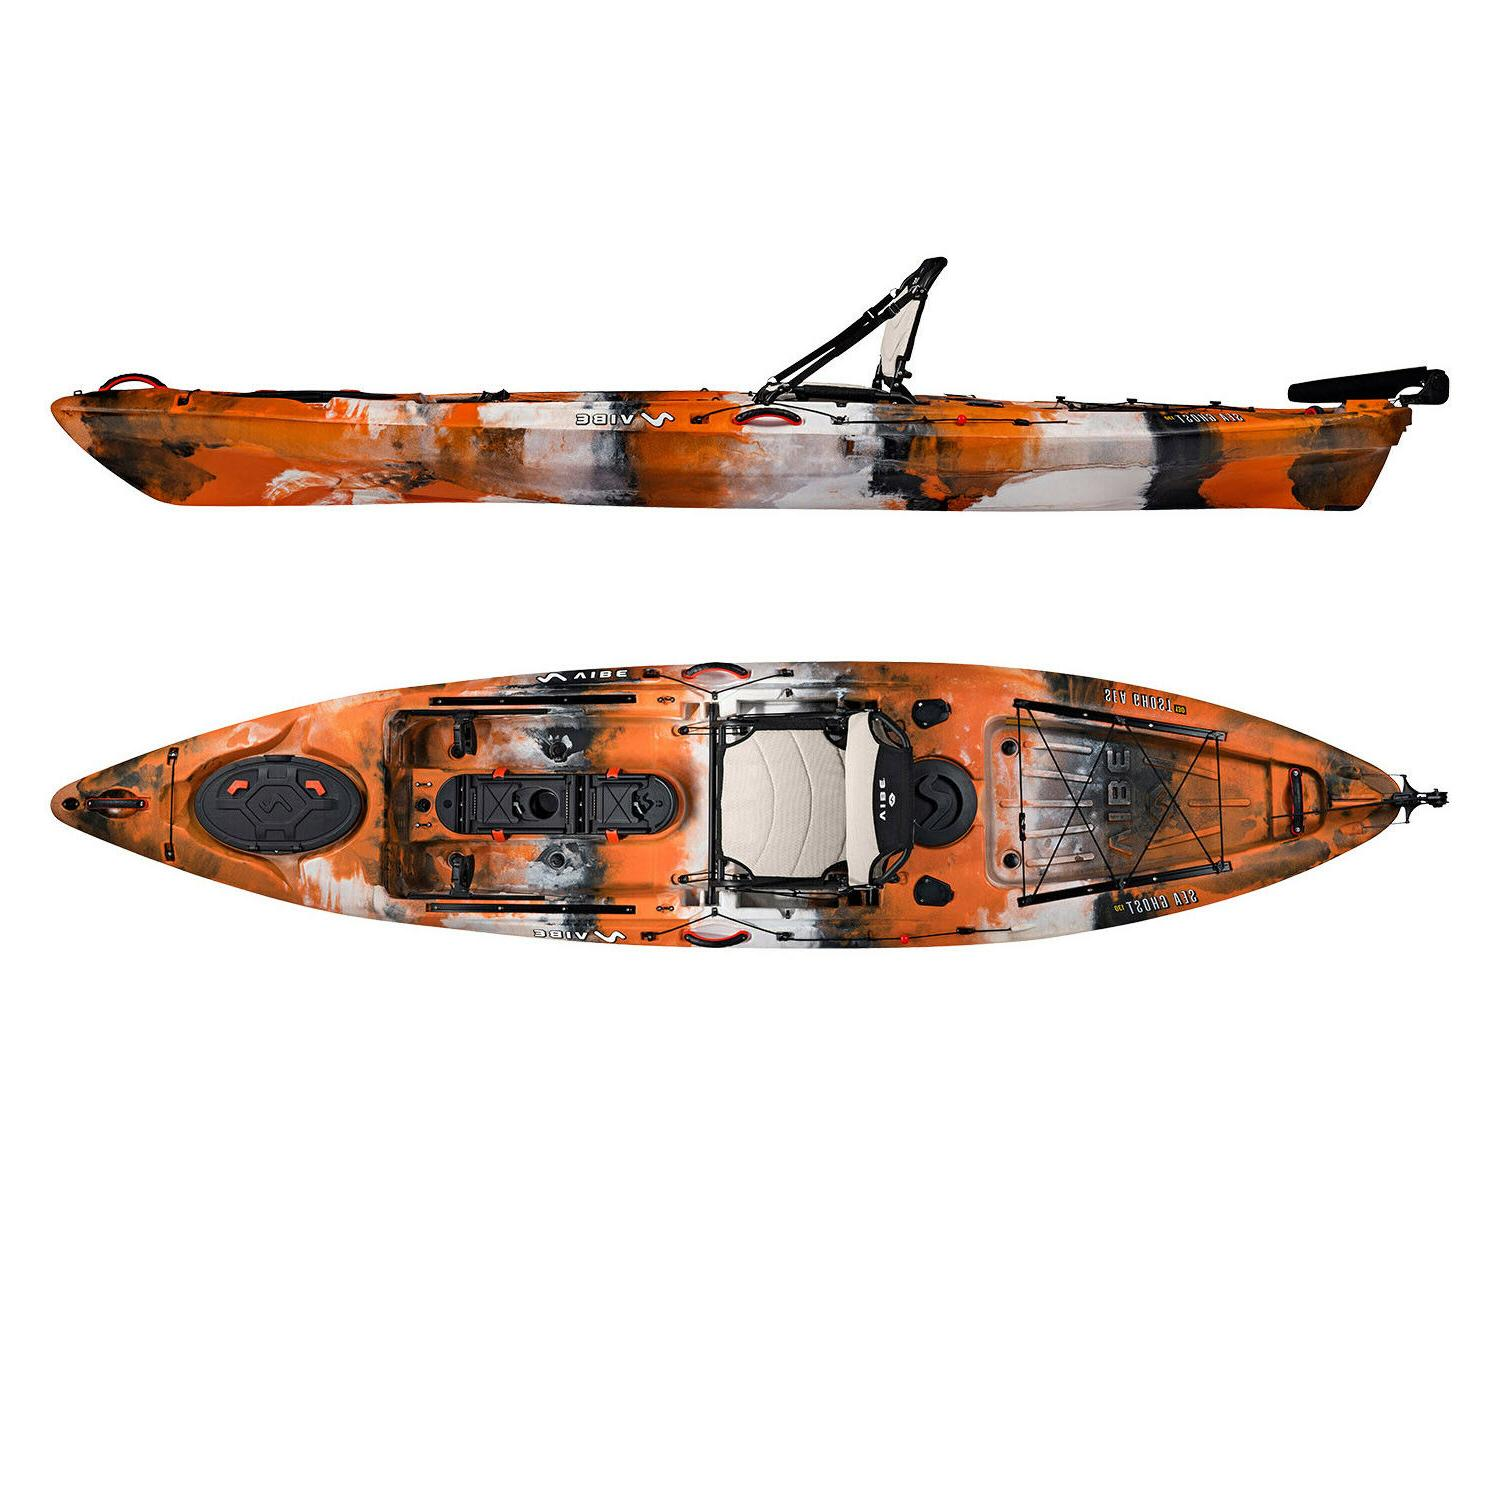 Vibe Sea 13' Pro Fishing Kayak | Rudder + Premium Seat